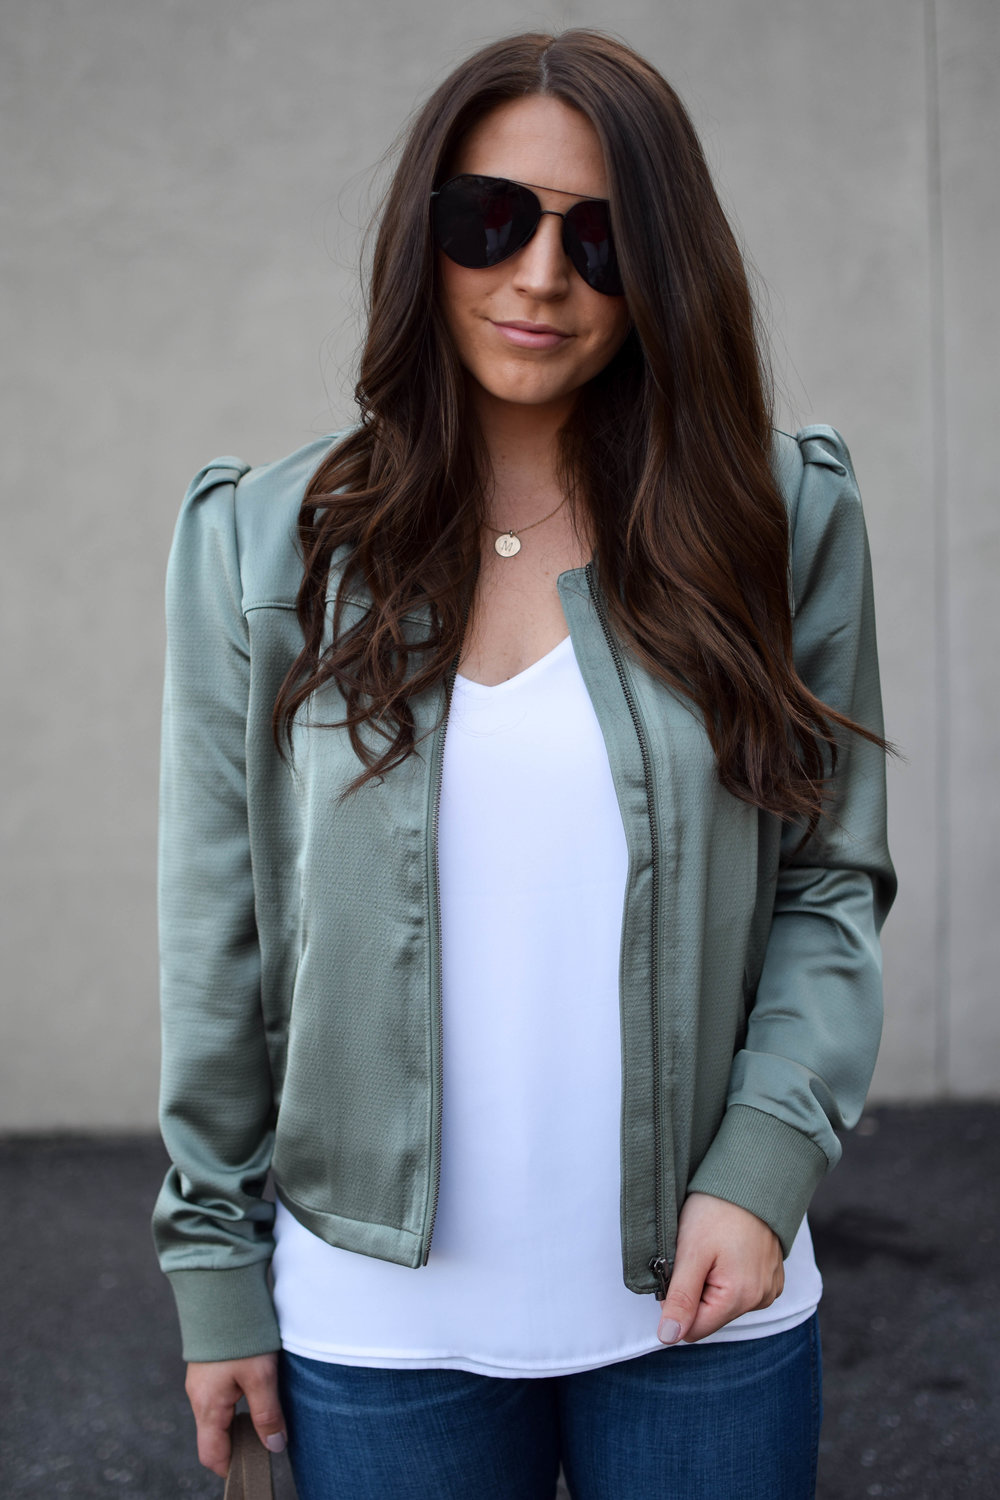 fall transition outfit idea / fall outfit idea / fall outfit inspiration / bomber jacket / how to style a bomber jacket / madewell denim